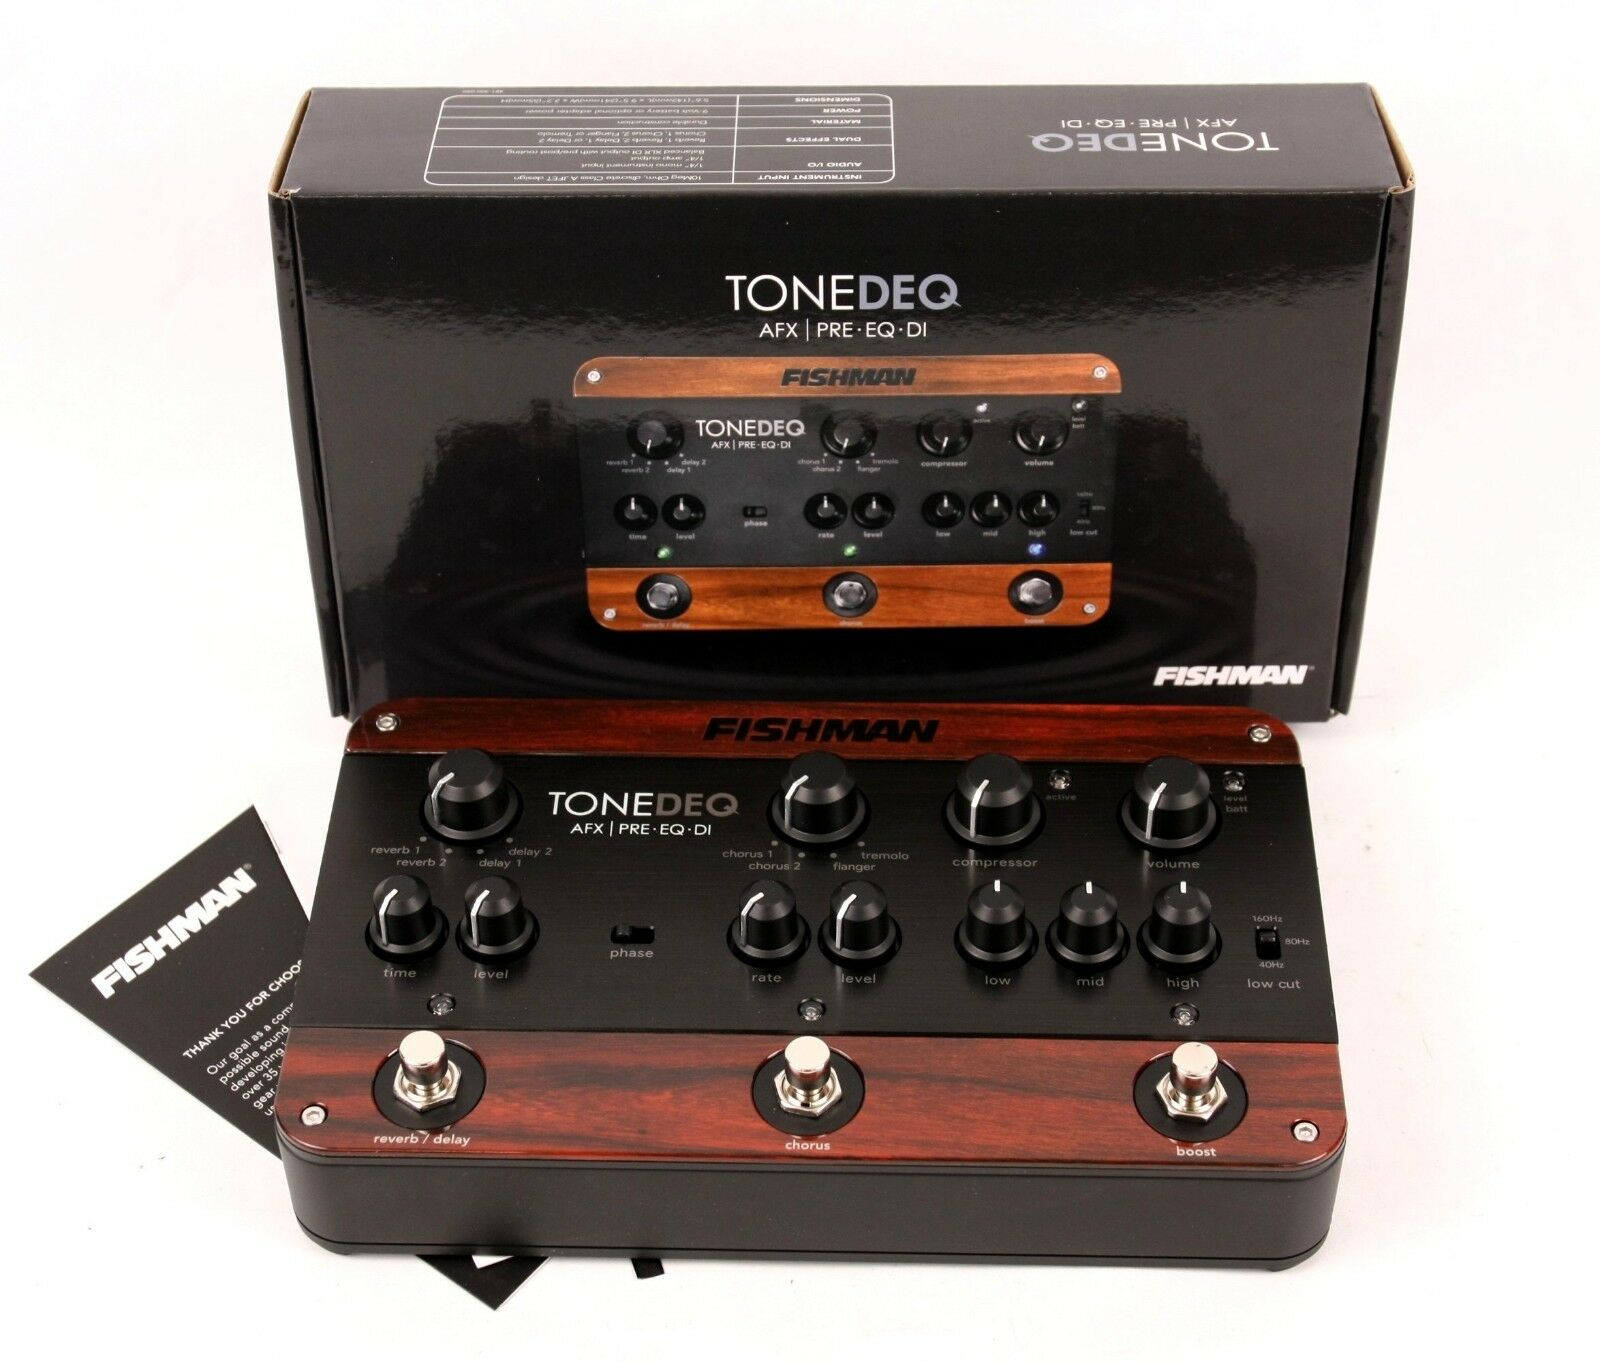 Fishman ToneDEQ Acoustic Instrument Preamp Equalizer Guitar Effect Pedal